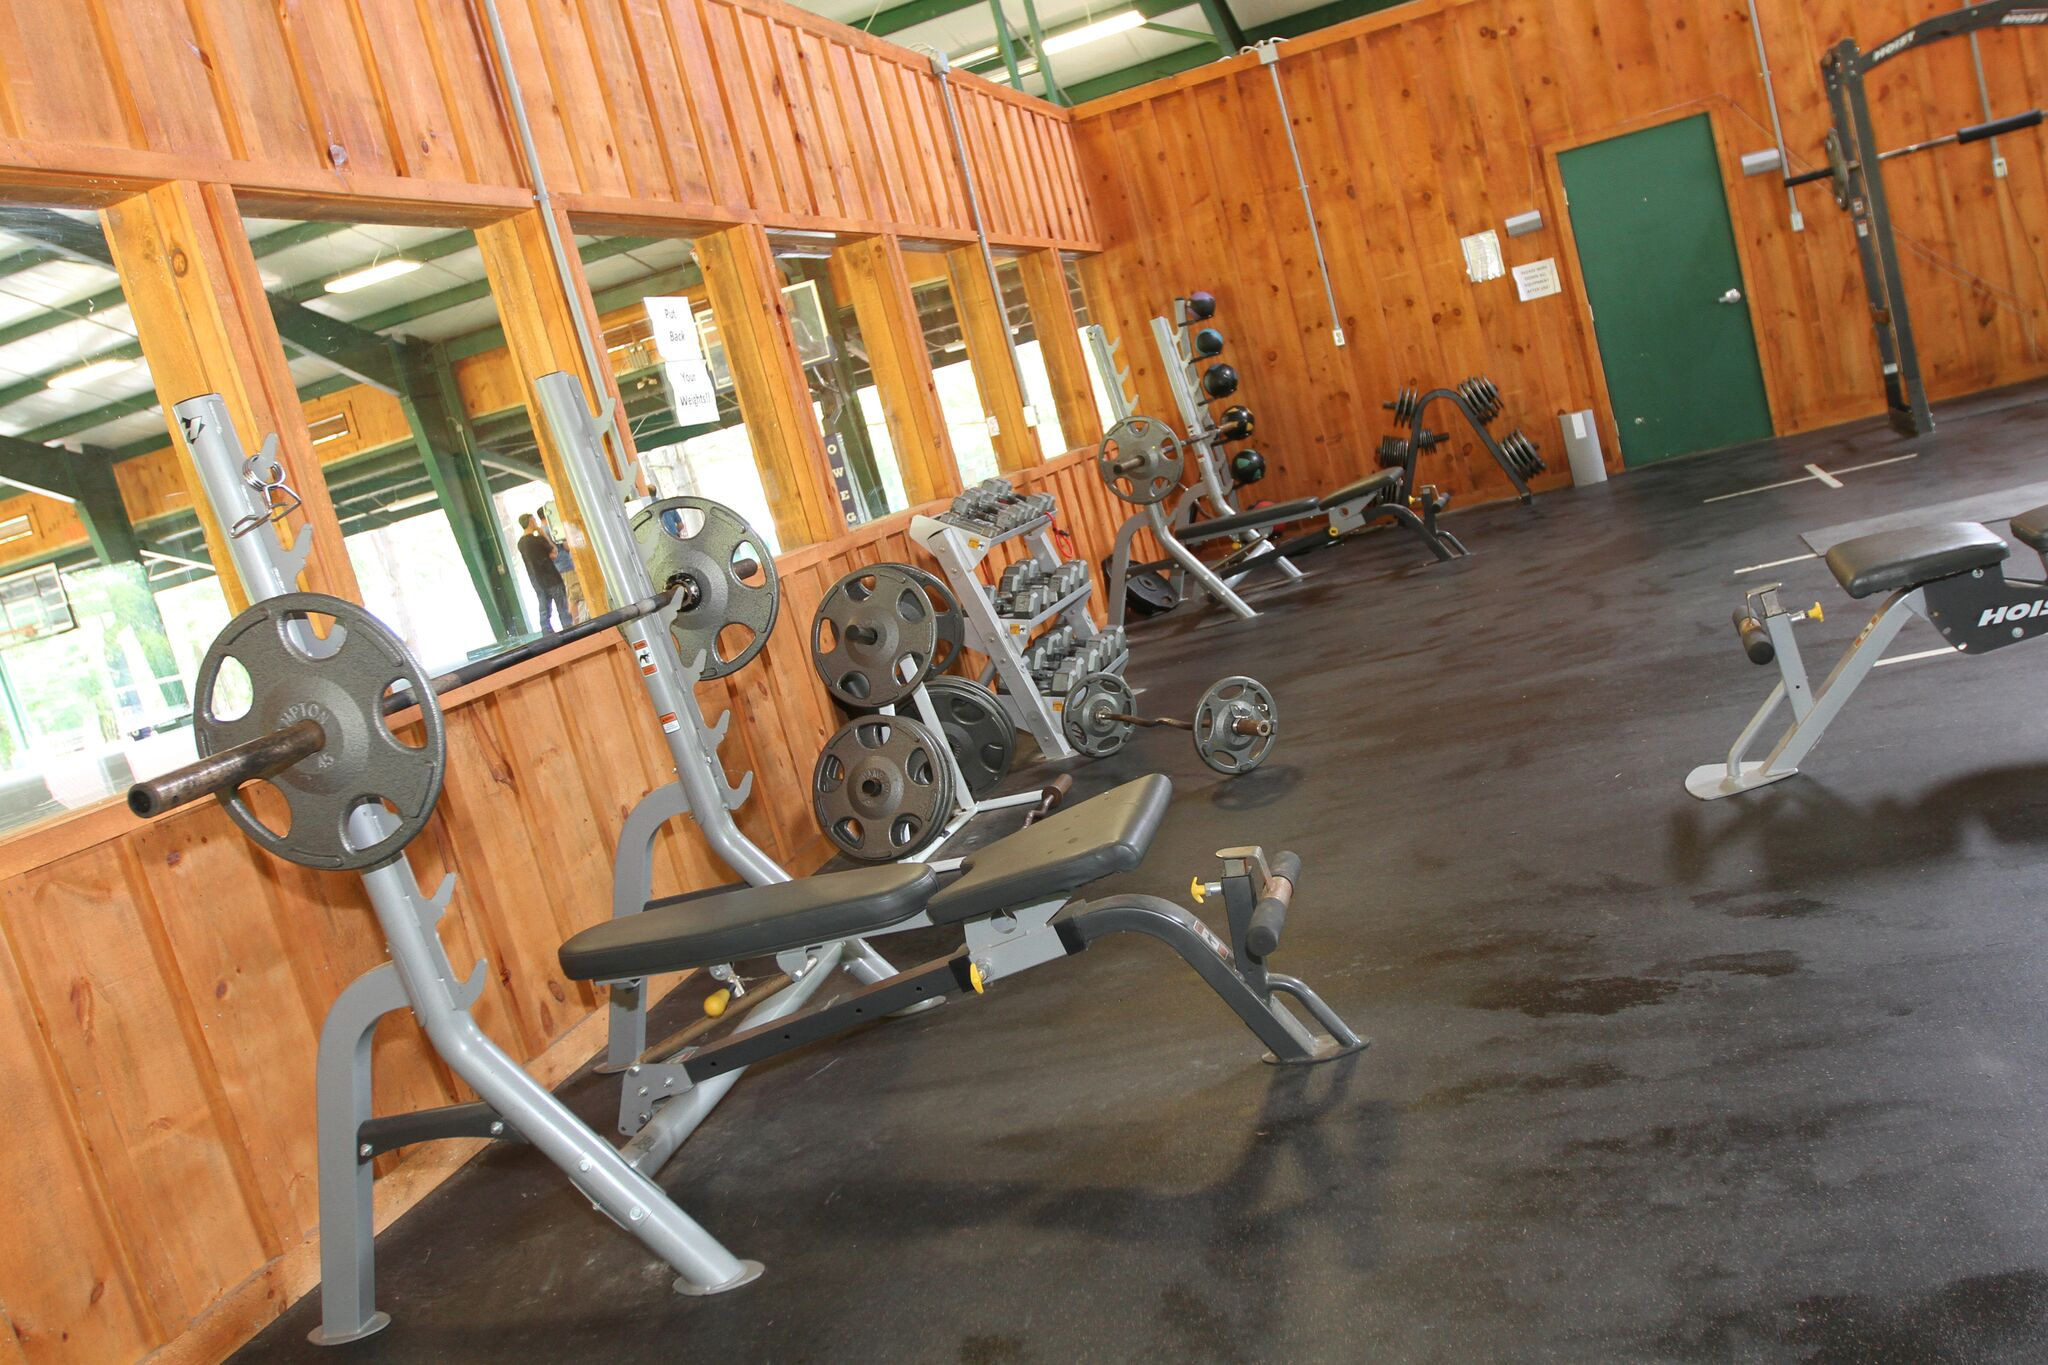 Fitness room at Lake Owego Camp